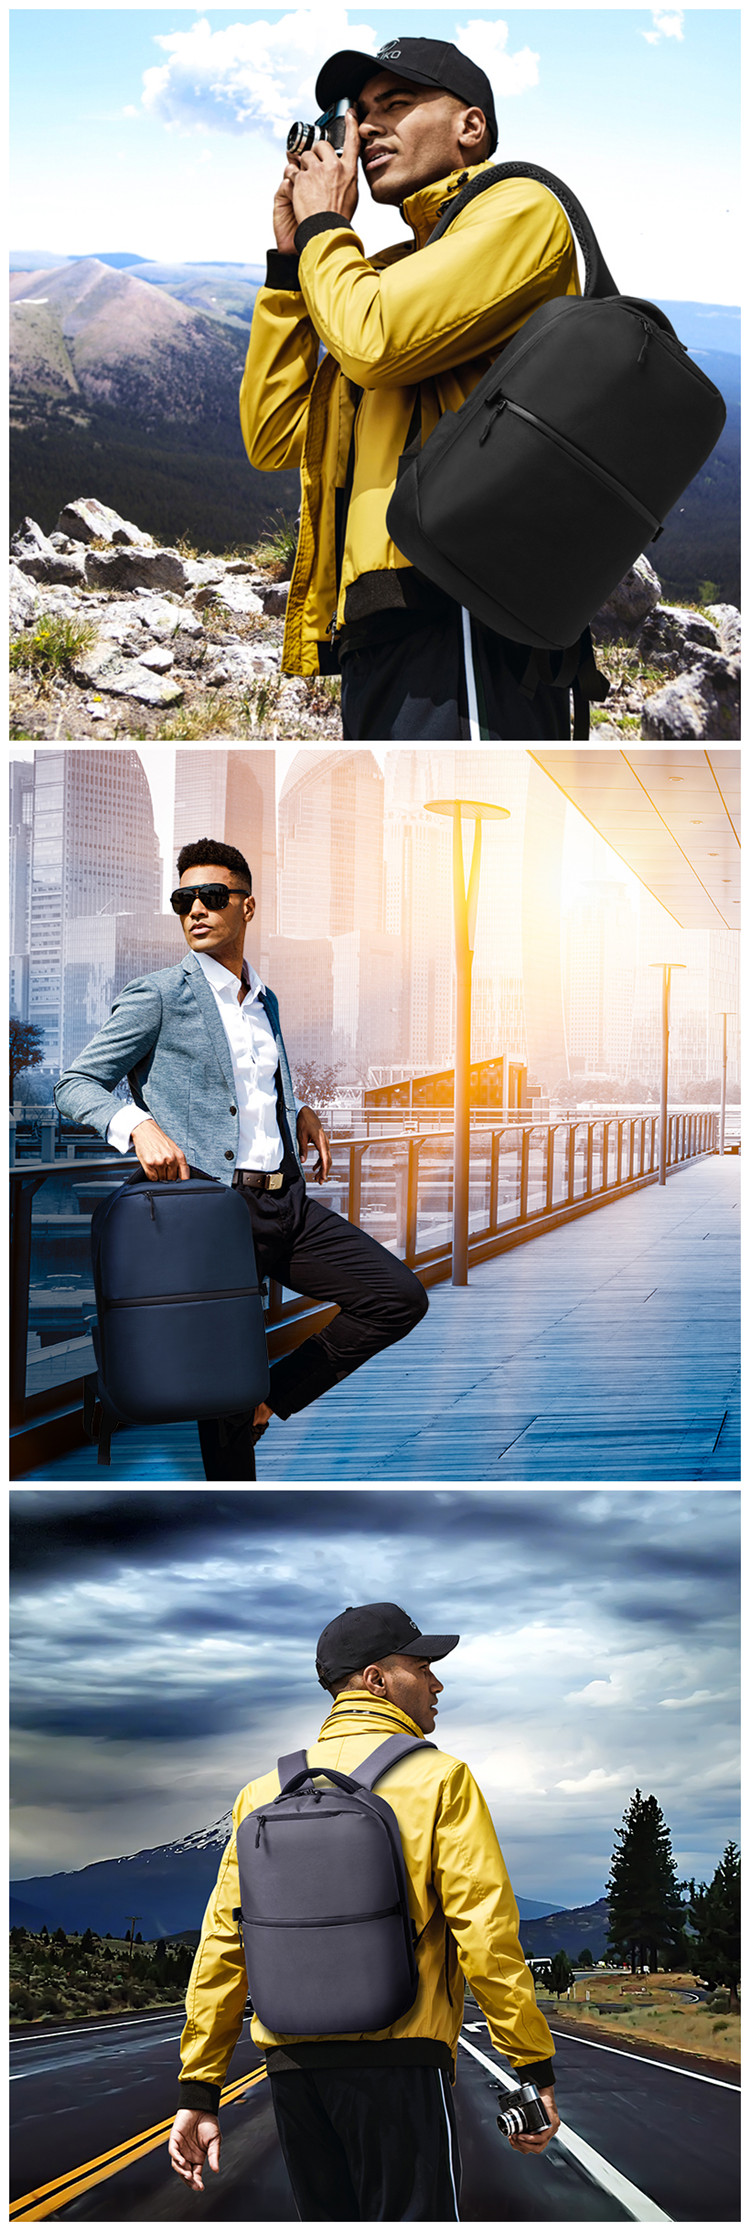 Ozuko hot sale pack new design travelling bags luggage oxford school bag for men anti-theft business bag anti theft backpack